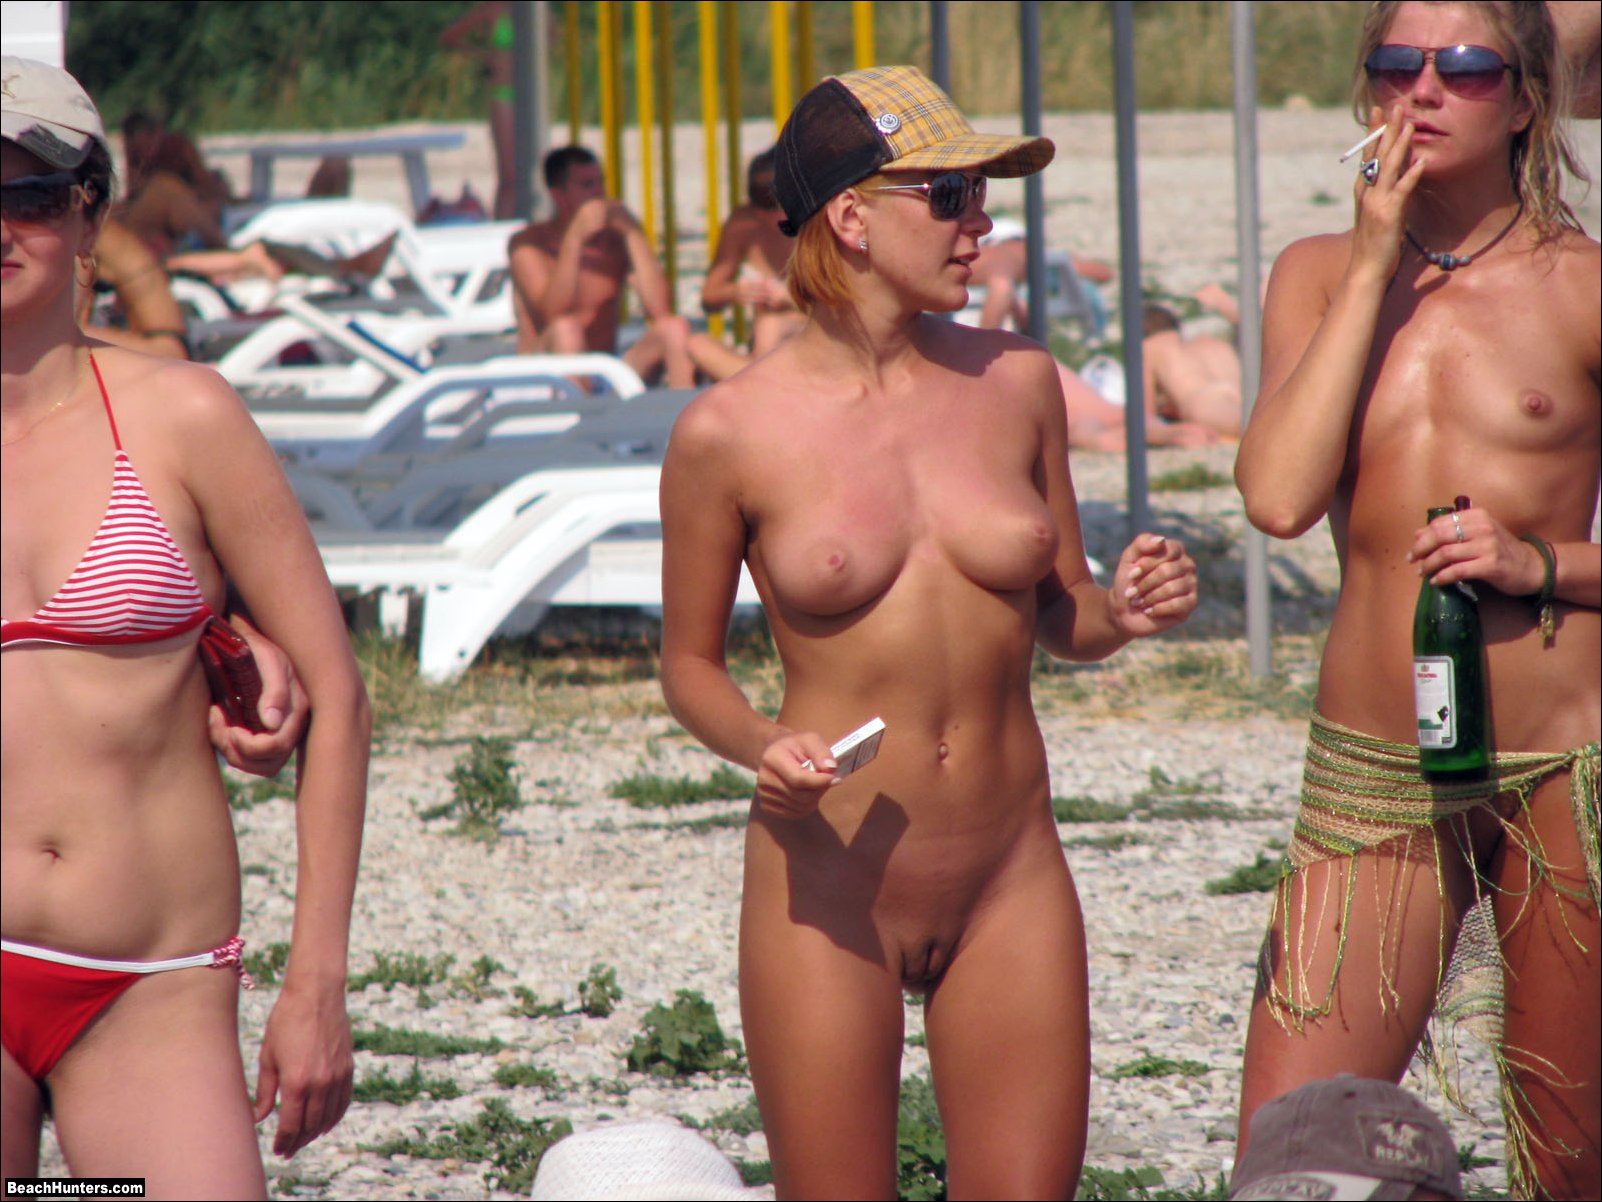 Pussynue Nude Real Volleyball Girls